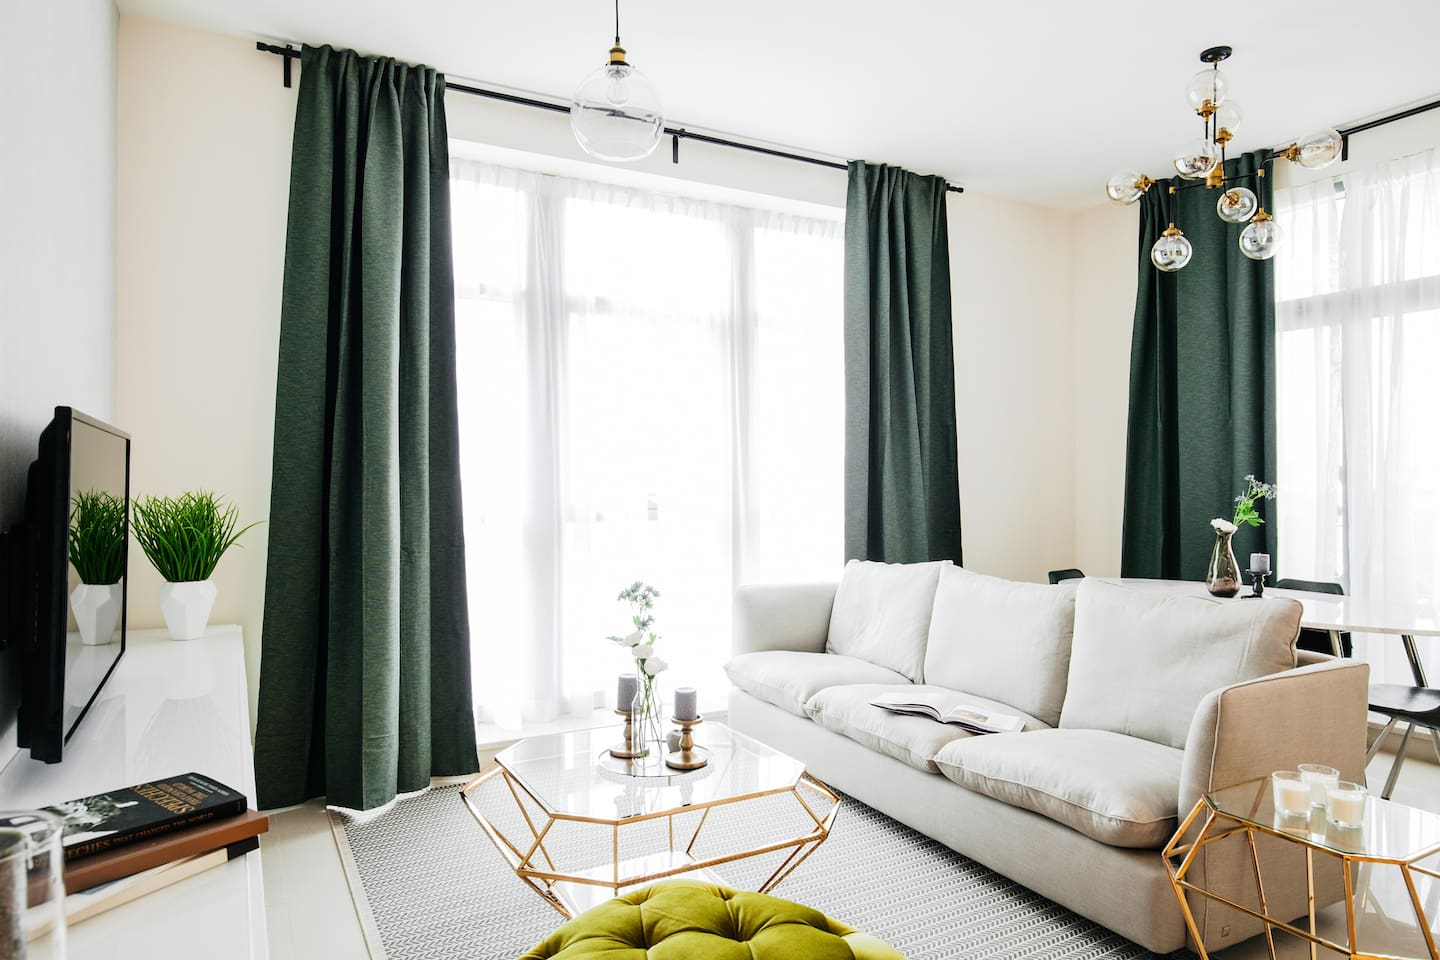 Design accents on point in the Living Space